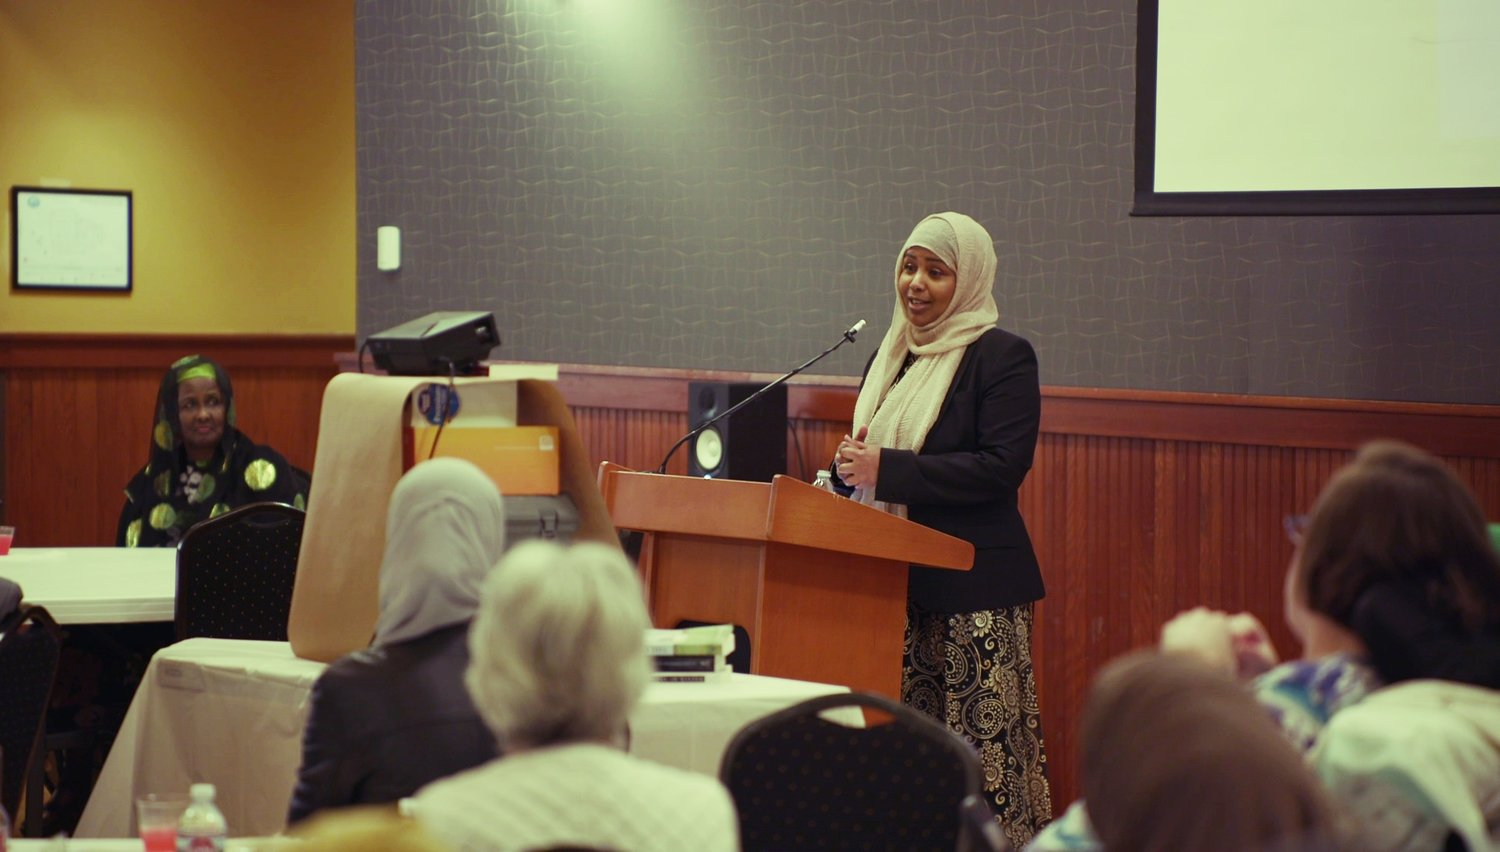 Fathia Absie addressing the guests at Eat With Muslims Anniversary Dinner April 27, 2018